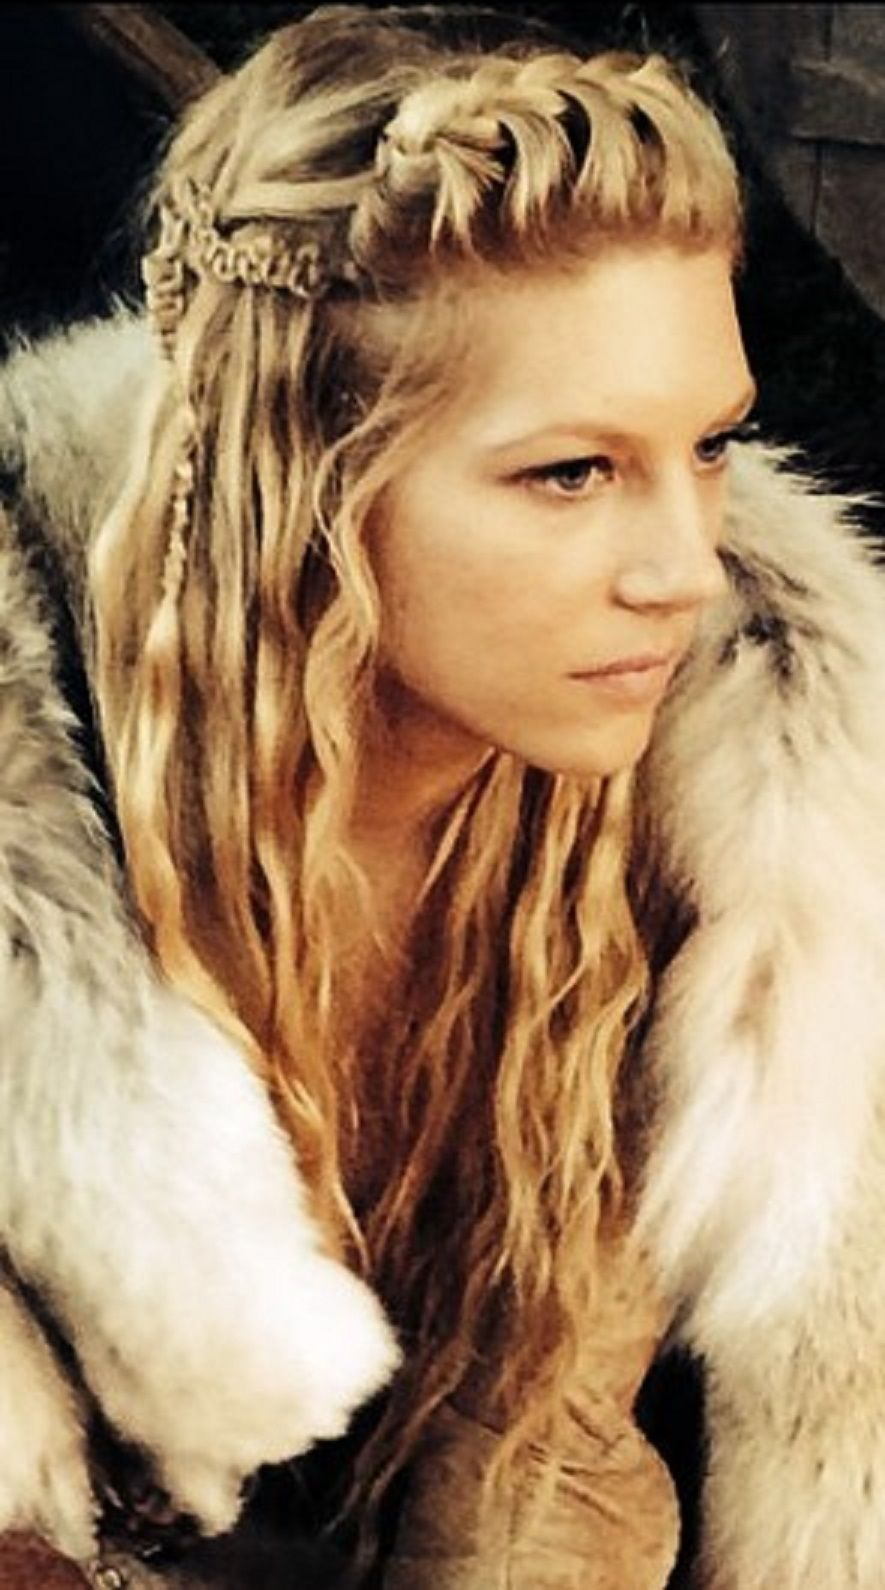 Lagertha S Hair Never Disappoints Com Imagens Penteados